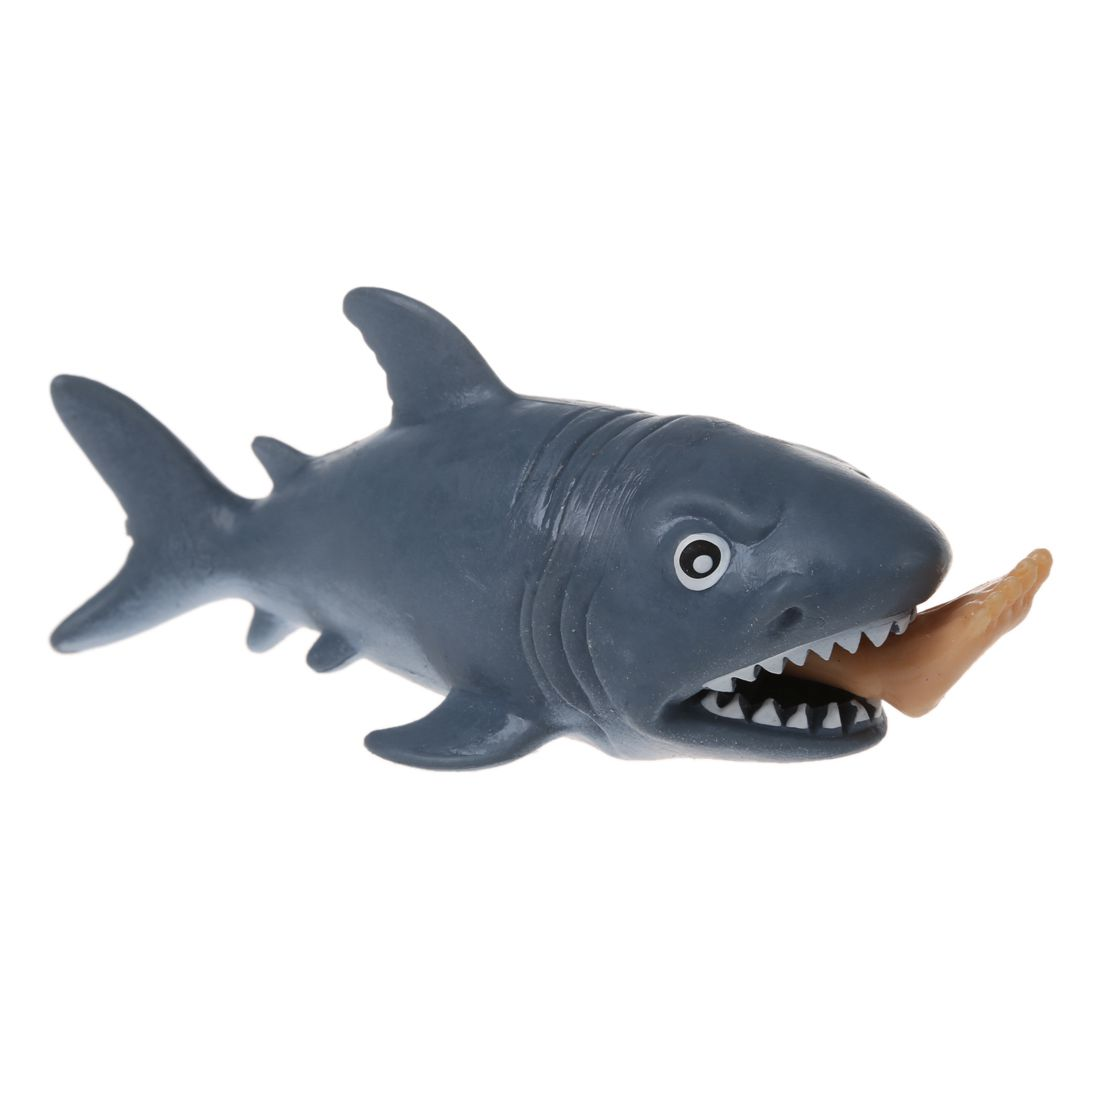 Funny Man-eating Shark Toy Scary Prank Wacky Squeezing Stress April Fools Toys